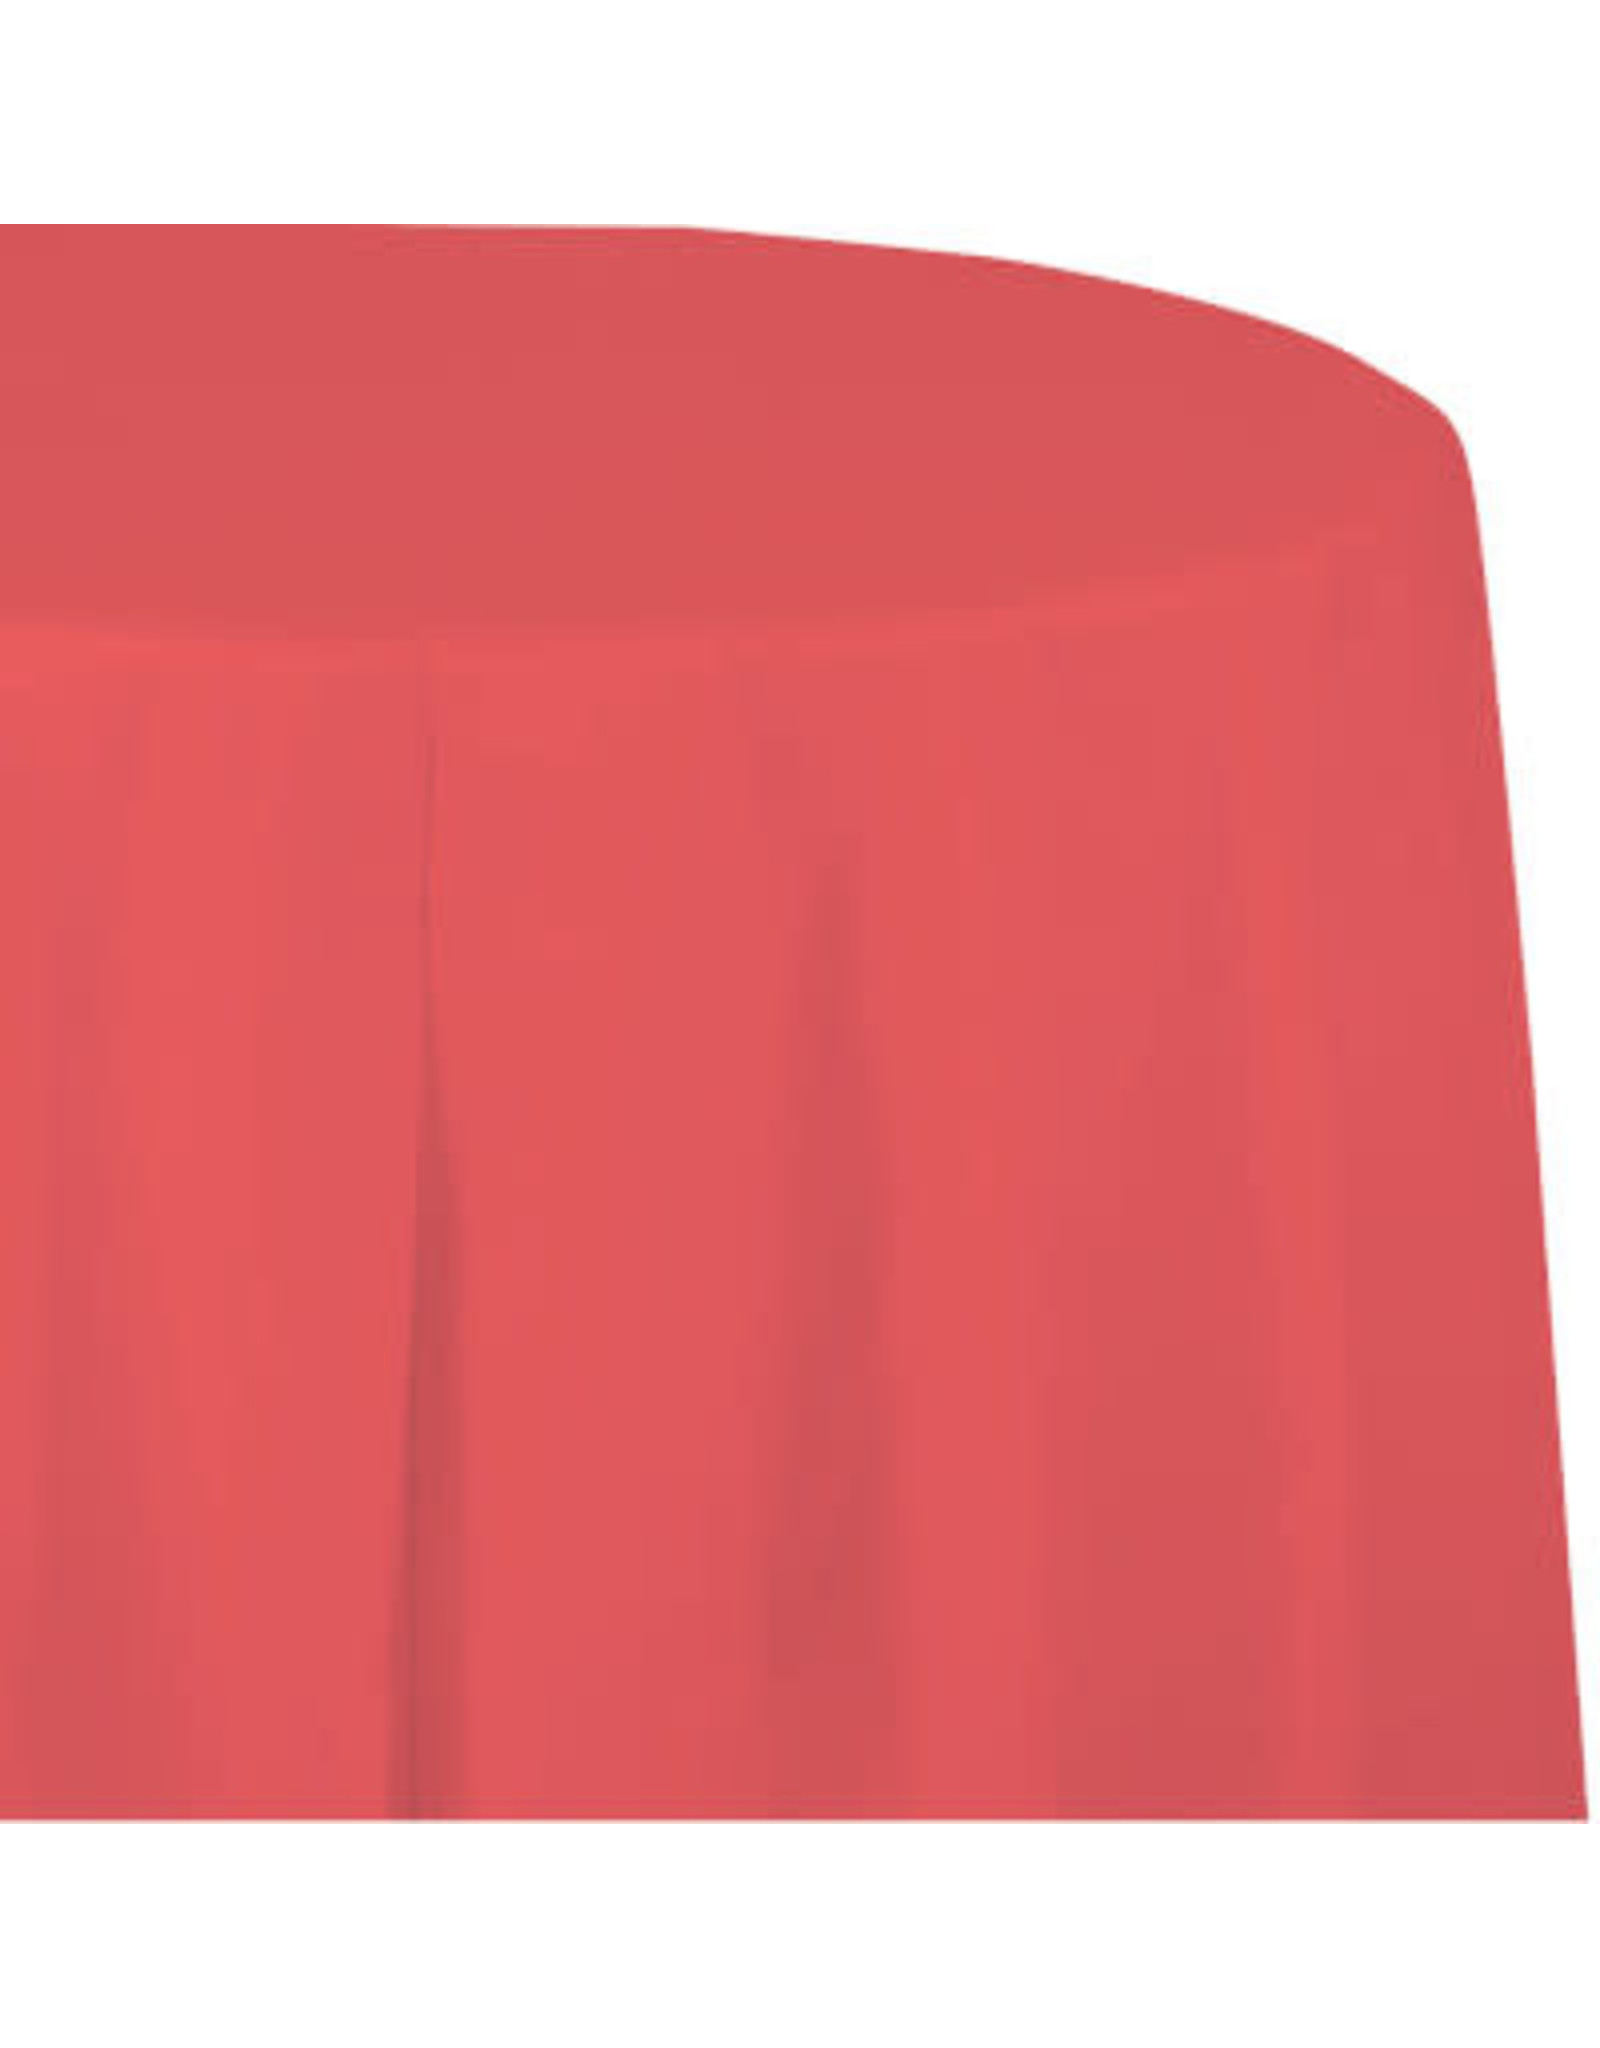 Touch of Color CORAL ROUND PLASTIC TABLECLOTH